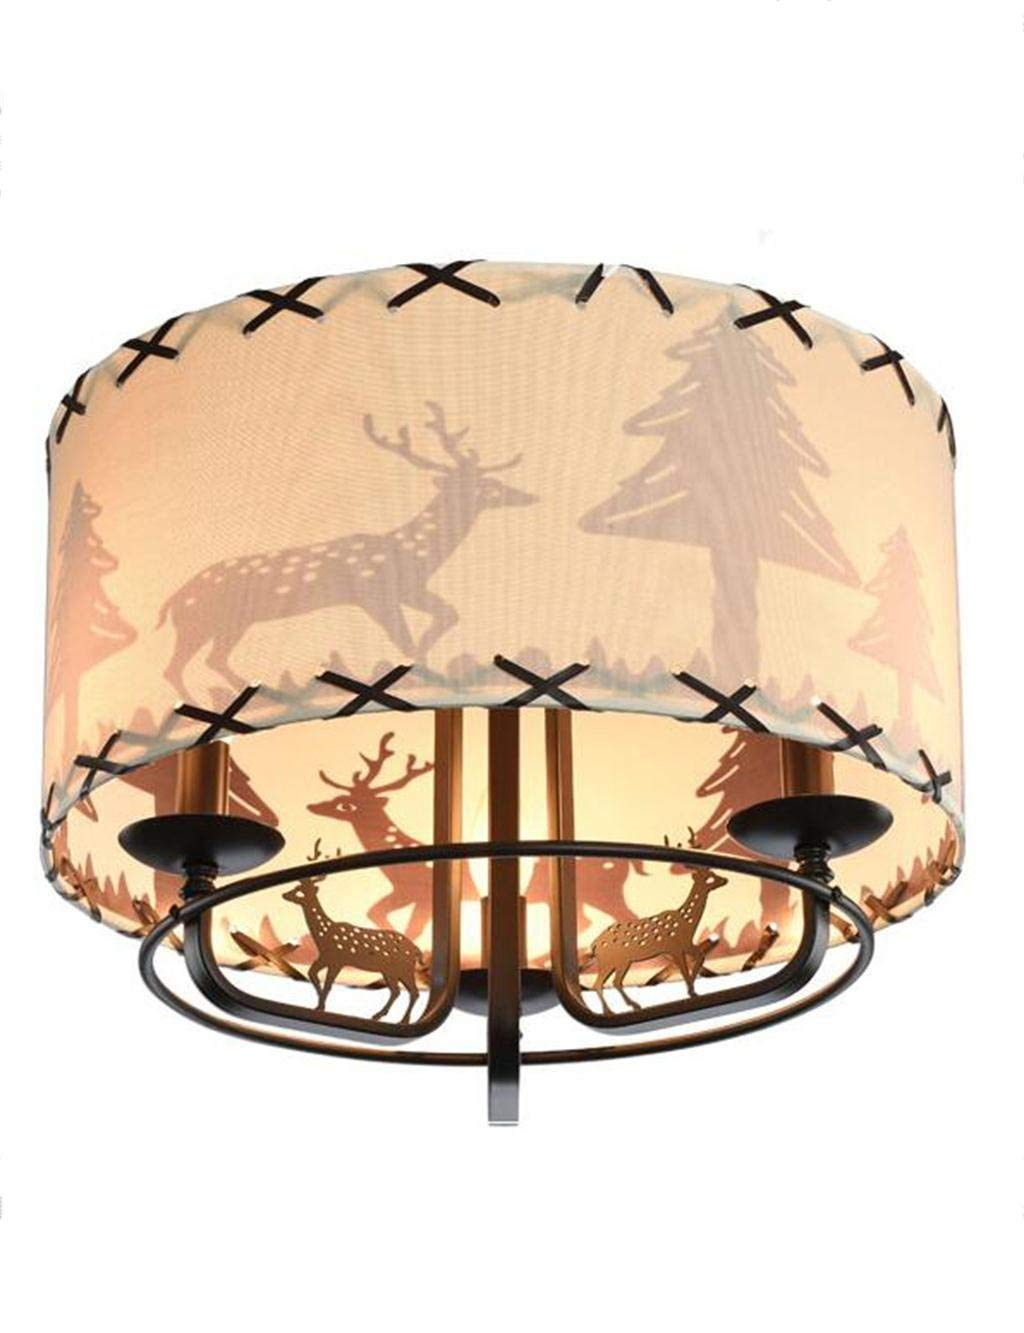 YANG Ceiling Light-American Iron Creative Cartoon Children's Bedroom Energy Saving